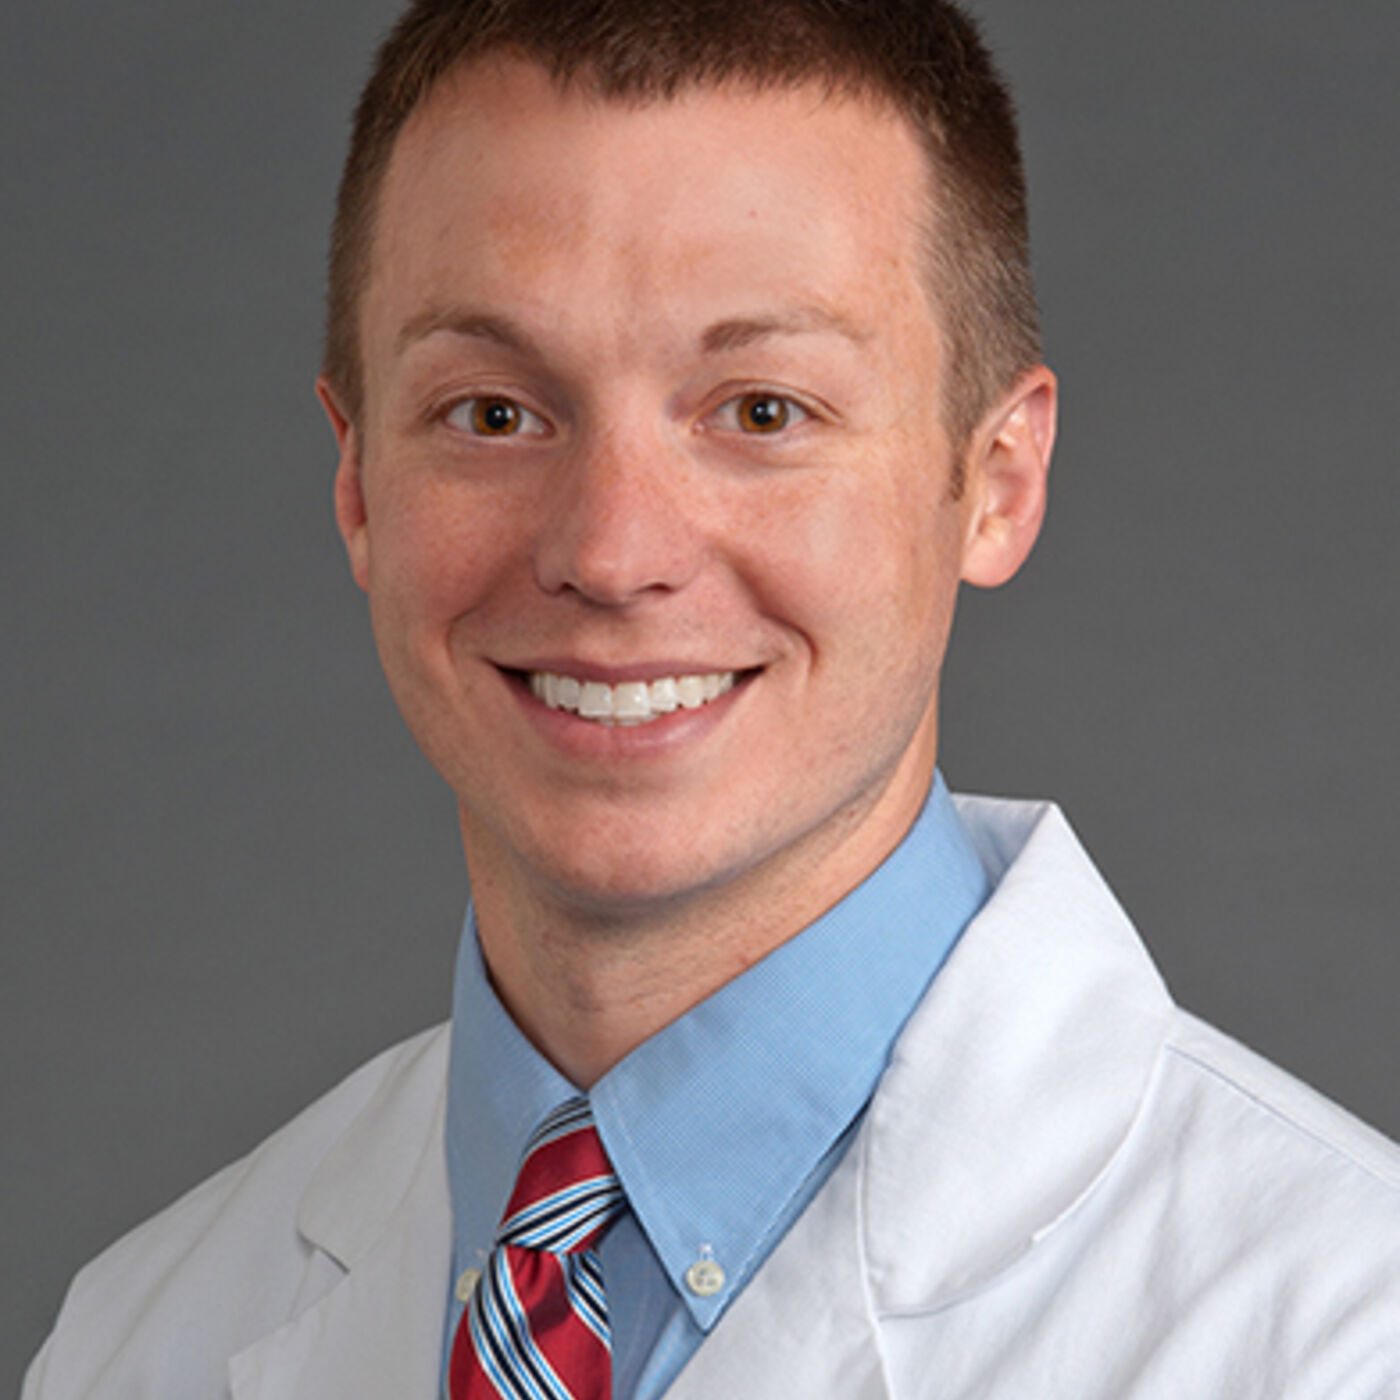 Medical Device Rep Podcast: Dr. John Shields